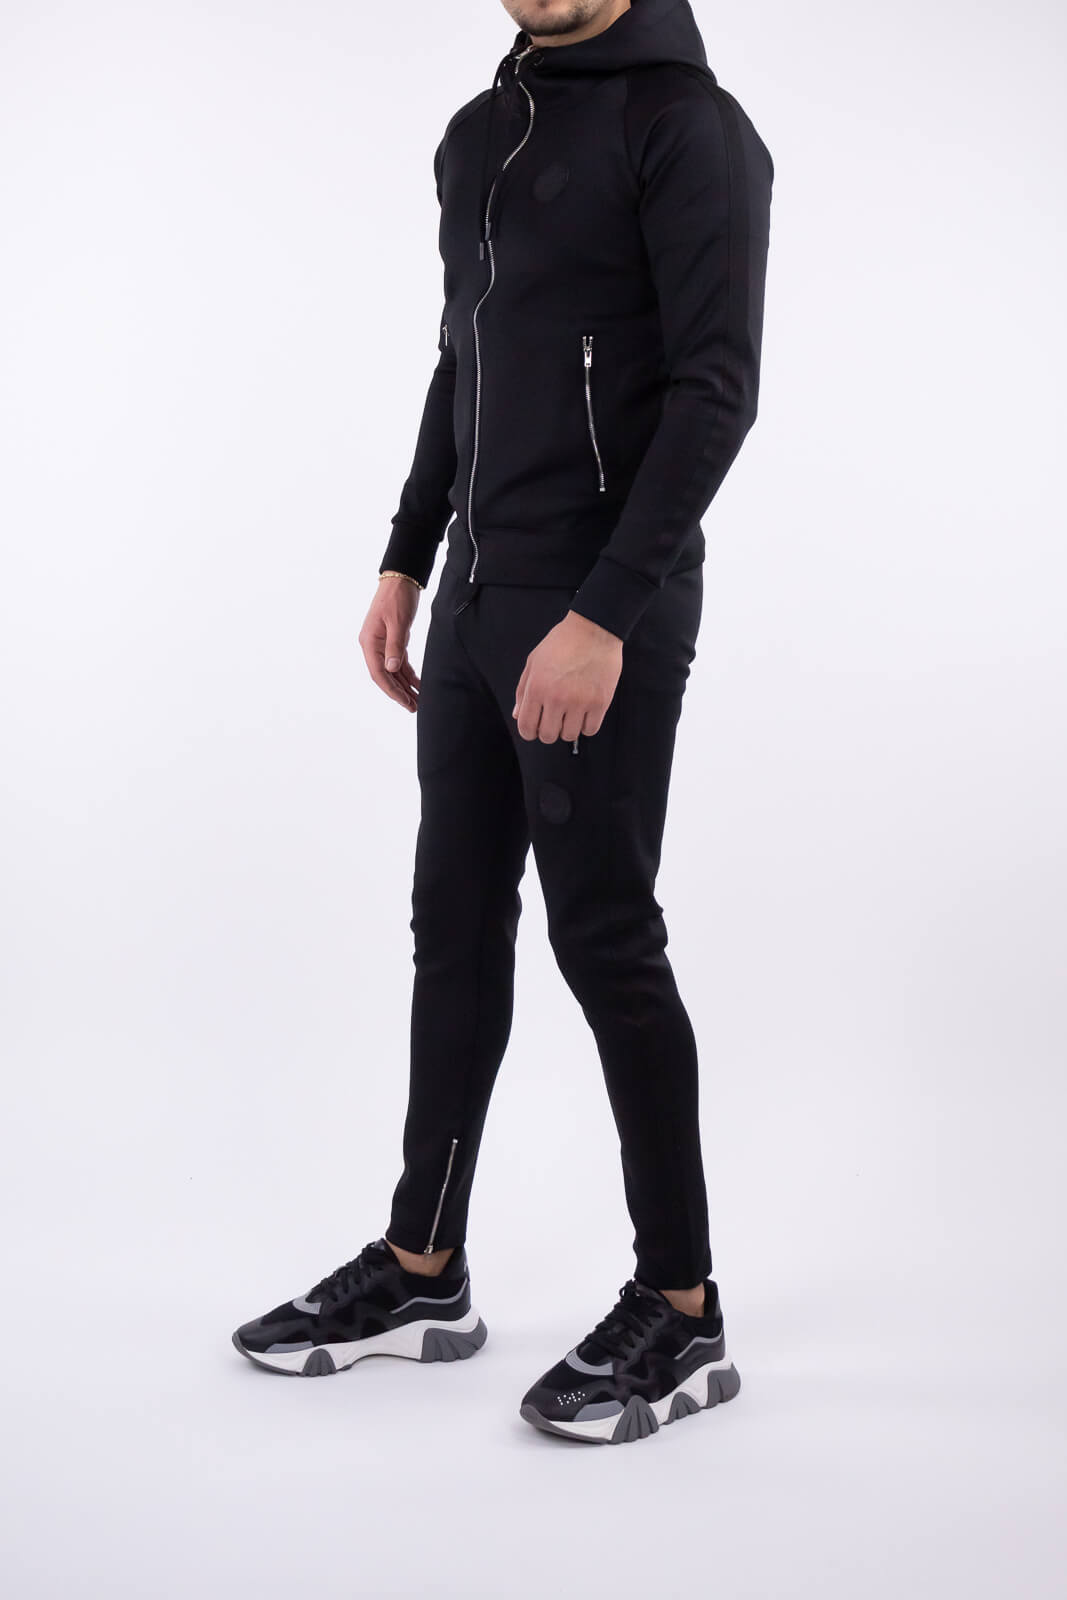 Richesse Generalissimo Tracksuit-02